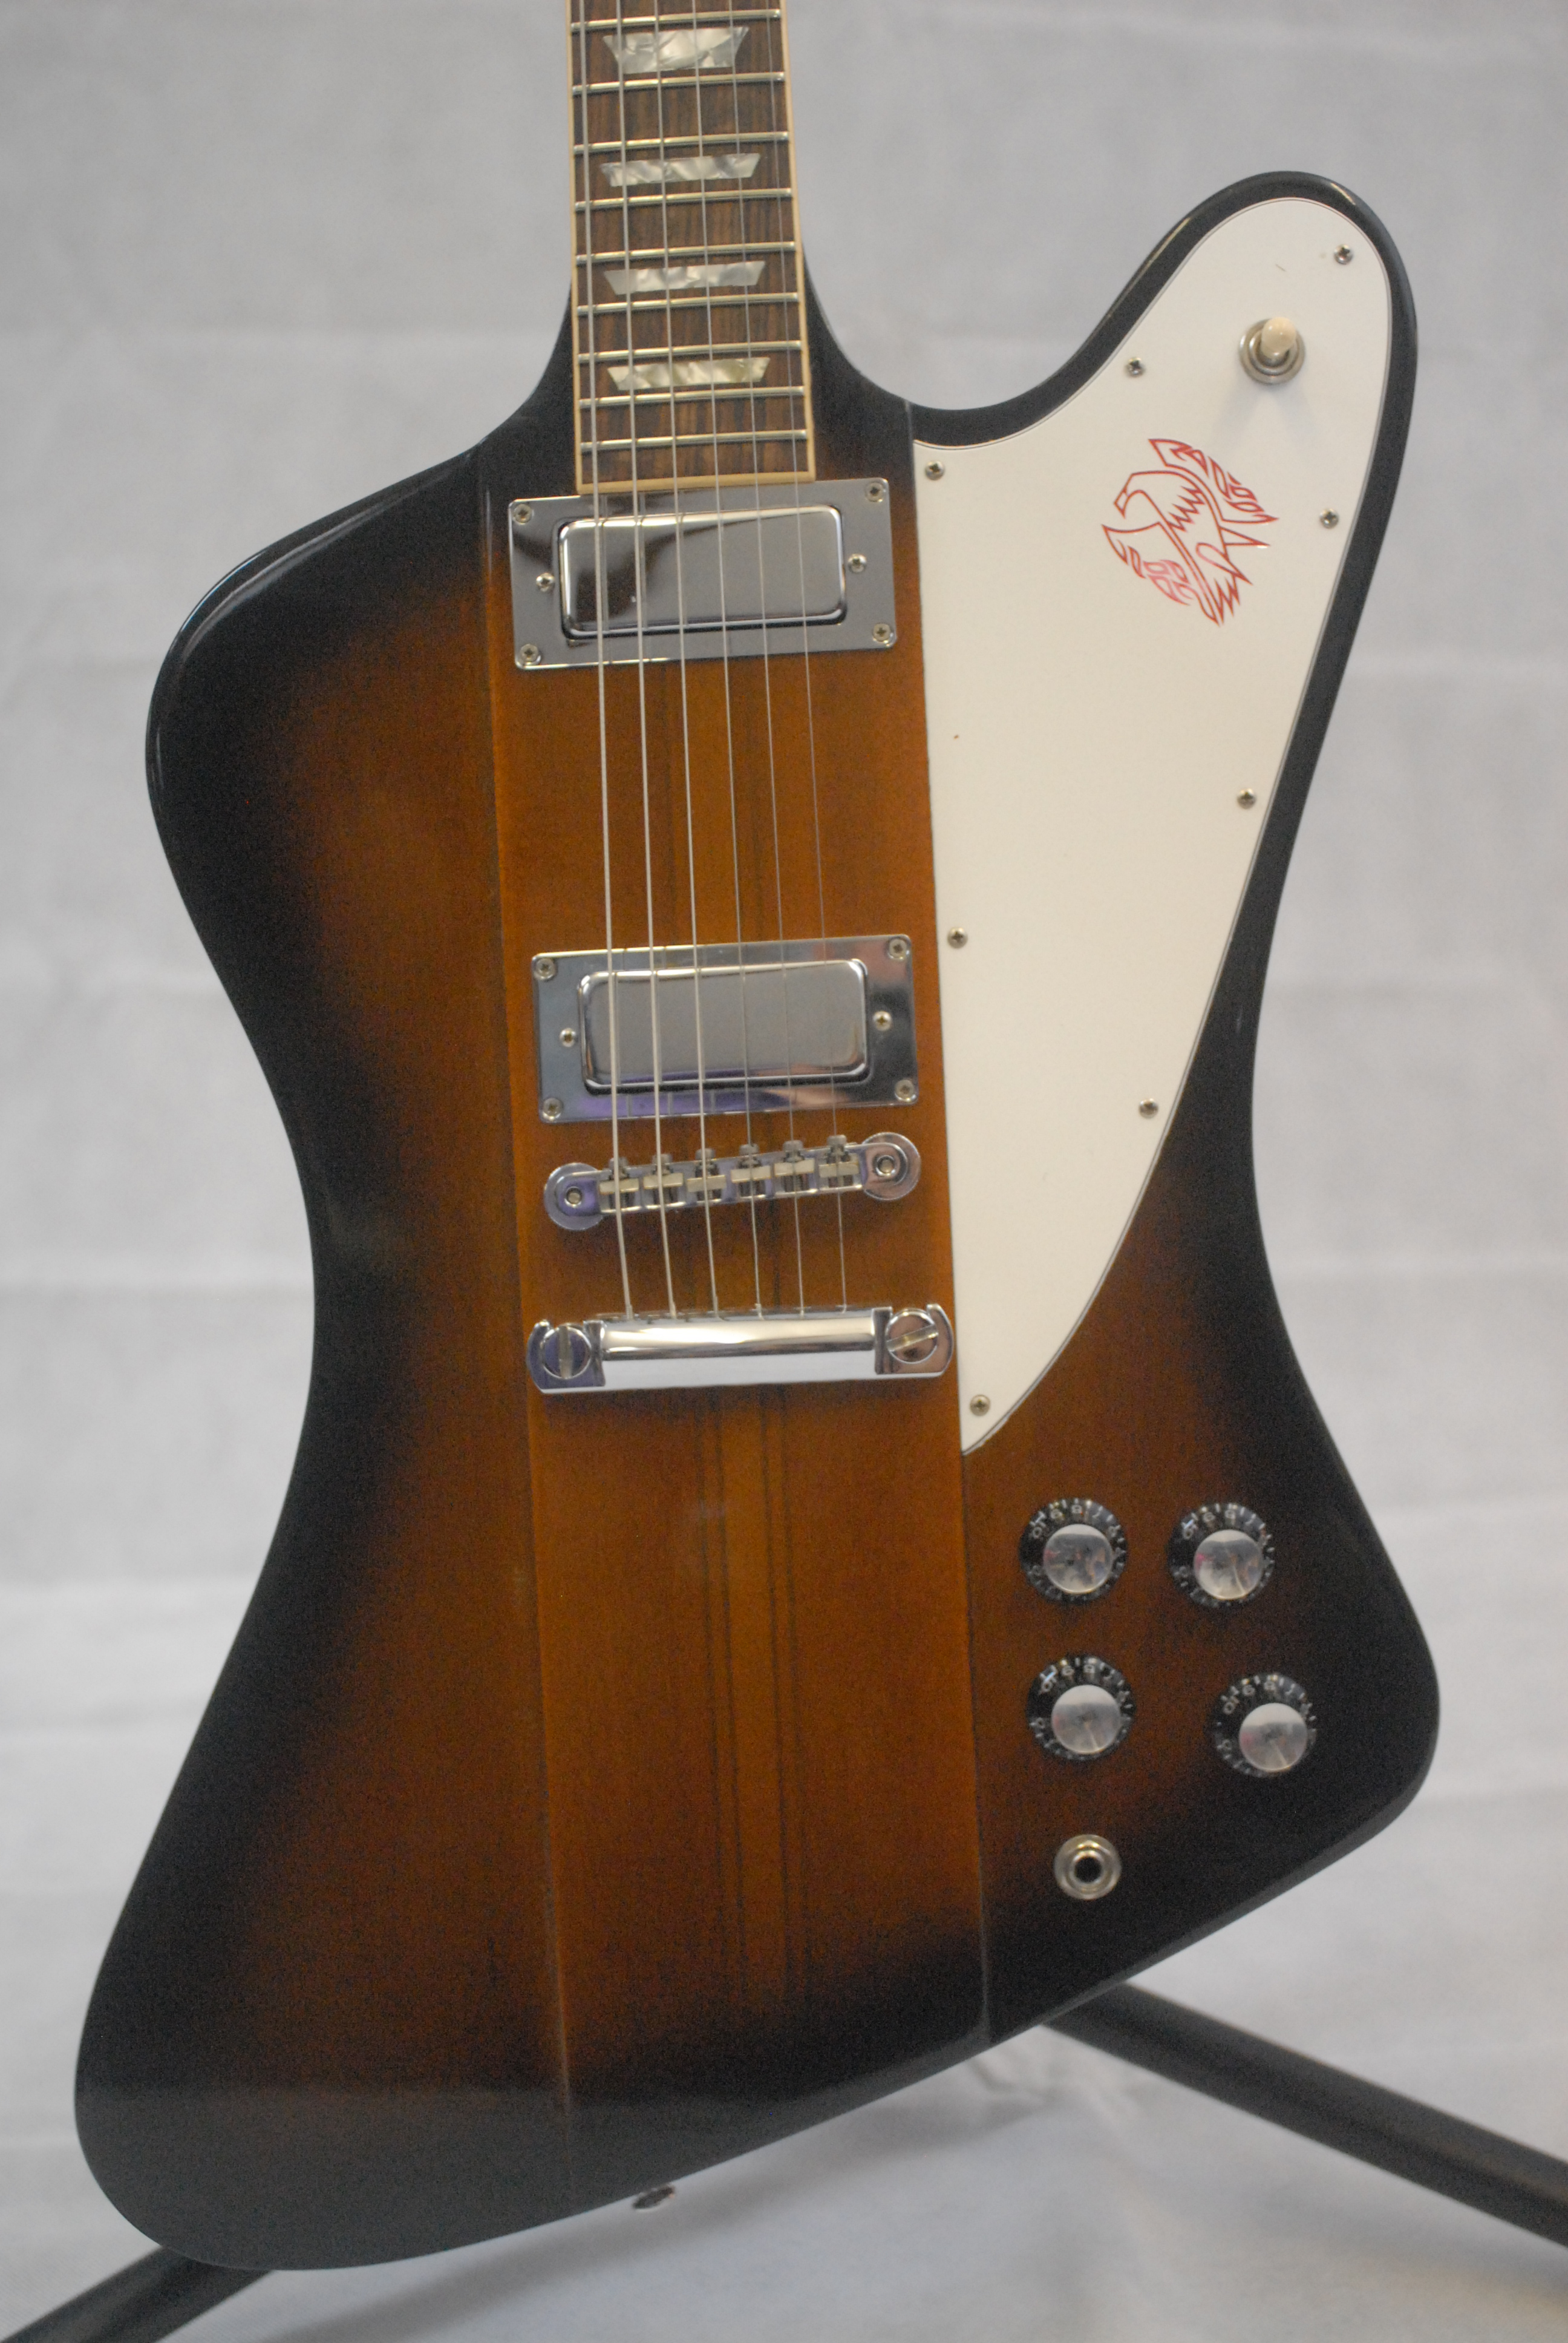 Gibson Guitars For Sale >> 2001 Gibson Firebird V Reverse Finished in Vintage ...